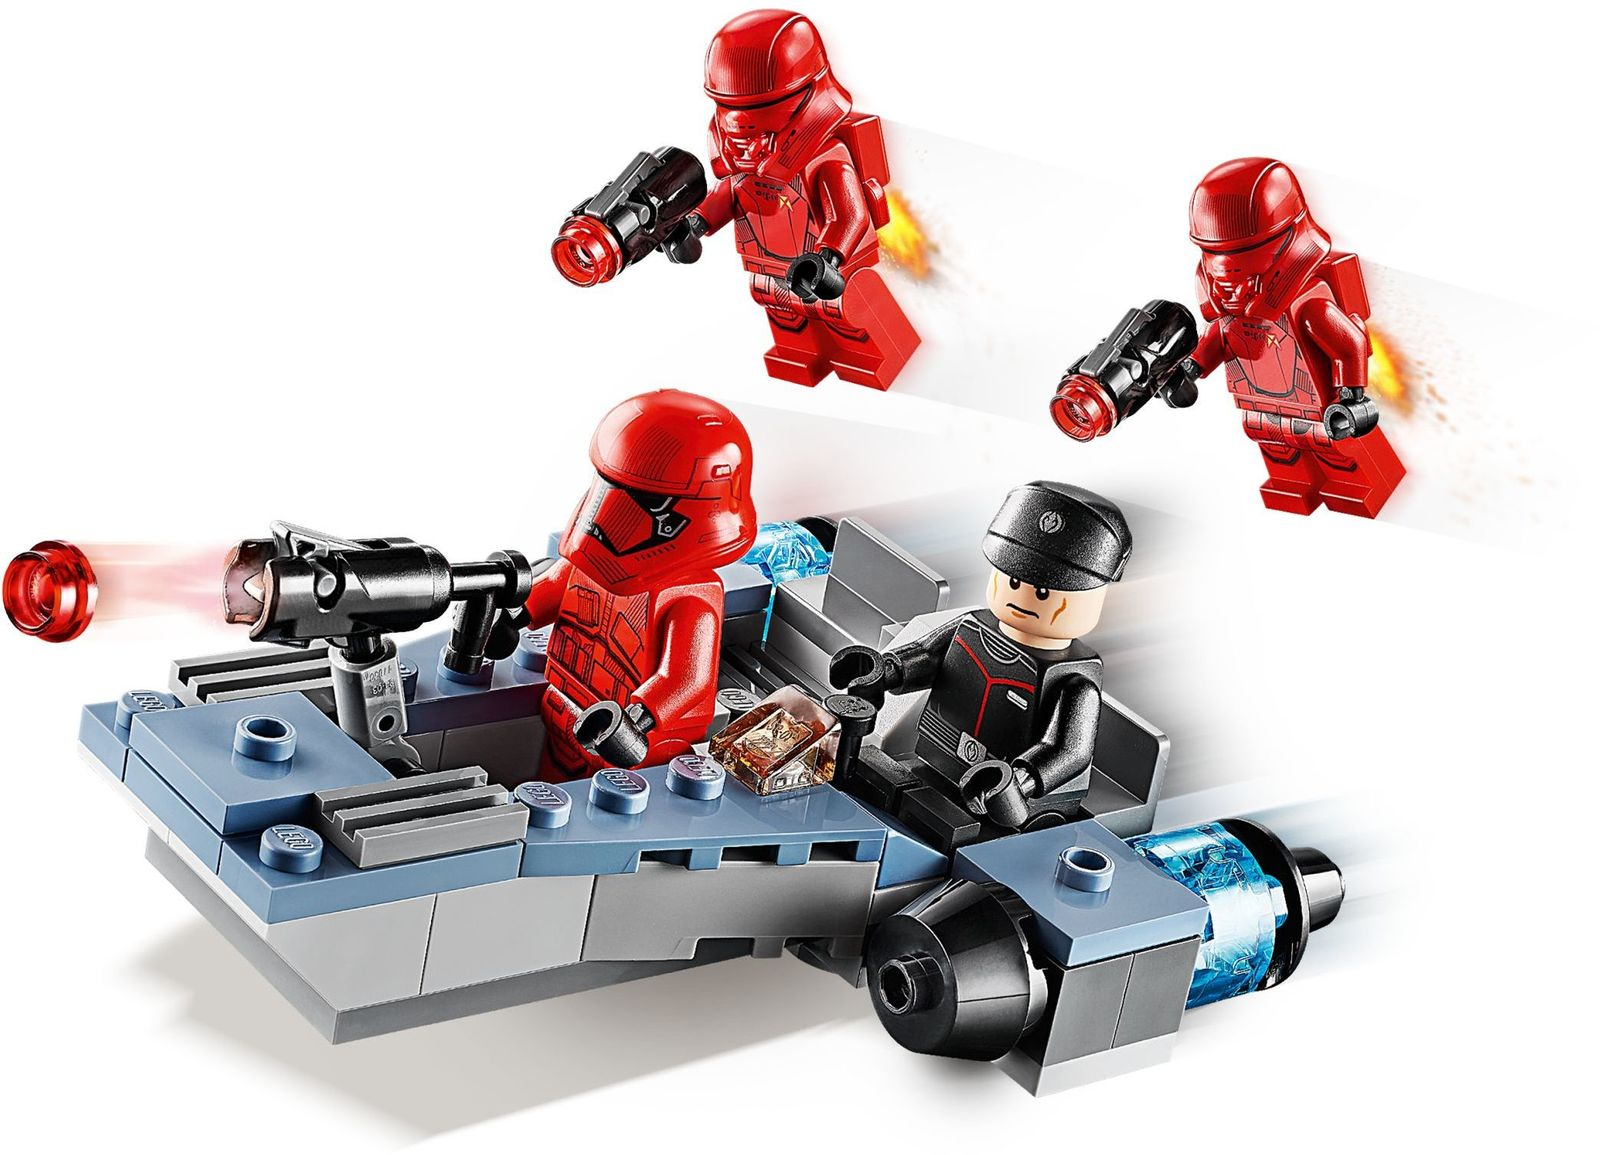 LEGO: Star Wars - Sith Troopers image